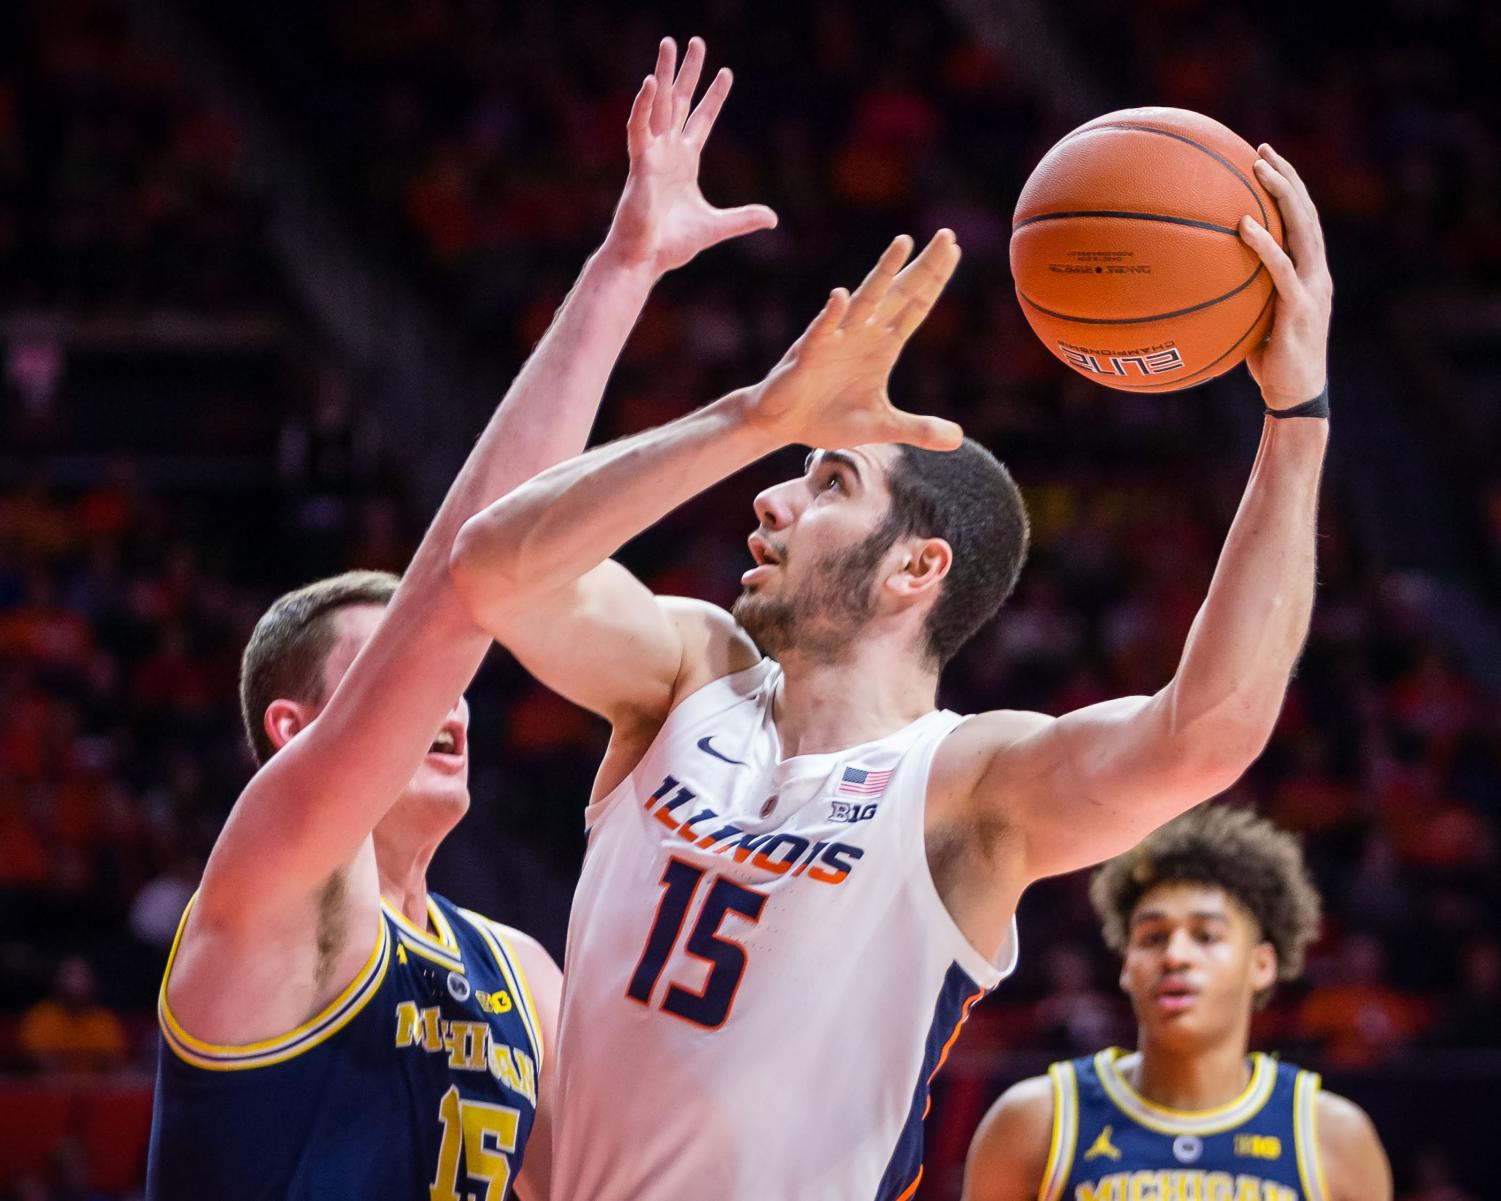 Illinois forward Giorgi Bezhanishvili looks to shoot the ball during the game against Michigan at the State Farm Center on Thursday. The Illini lost 79-69.